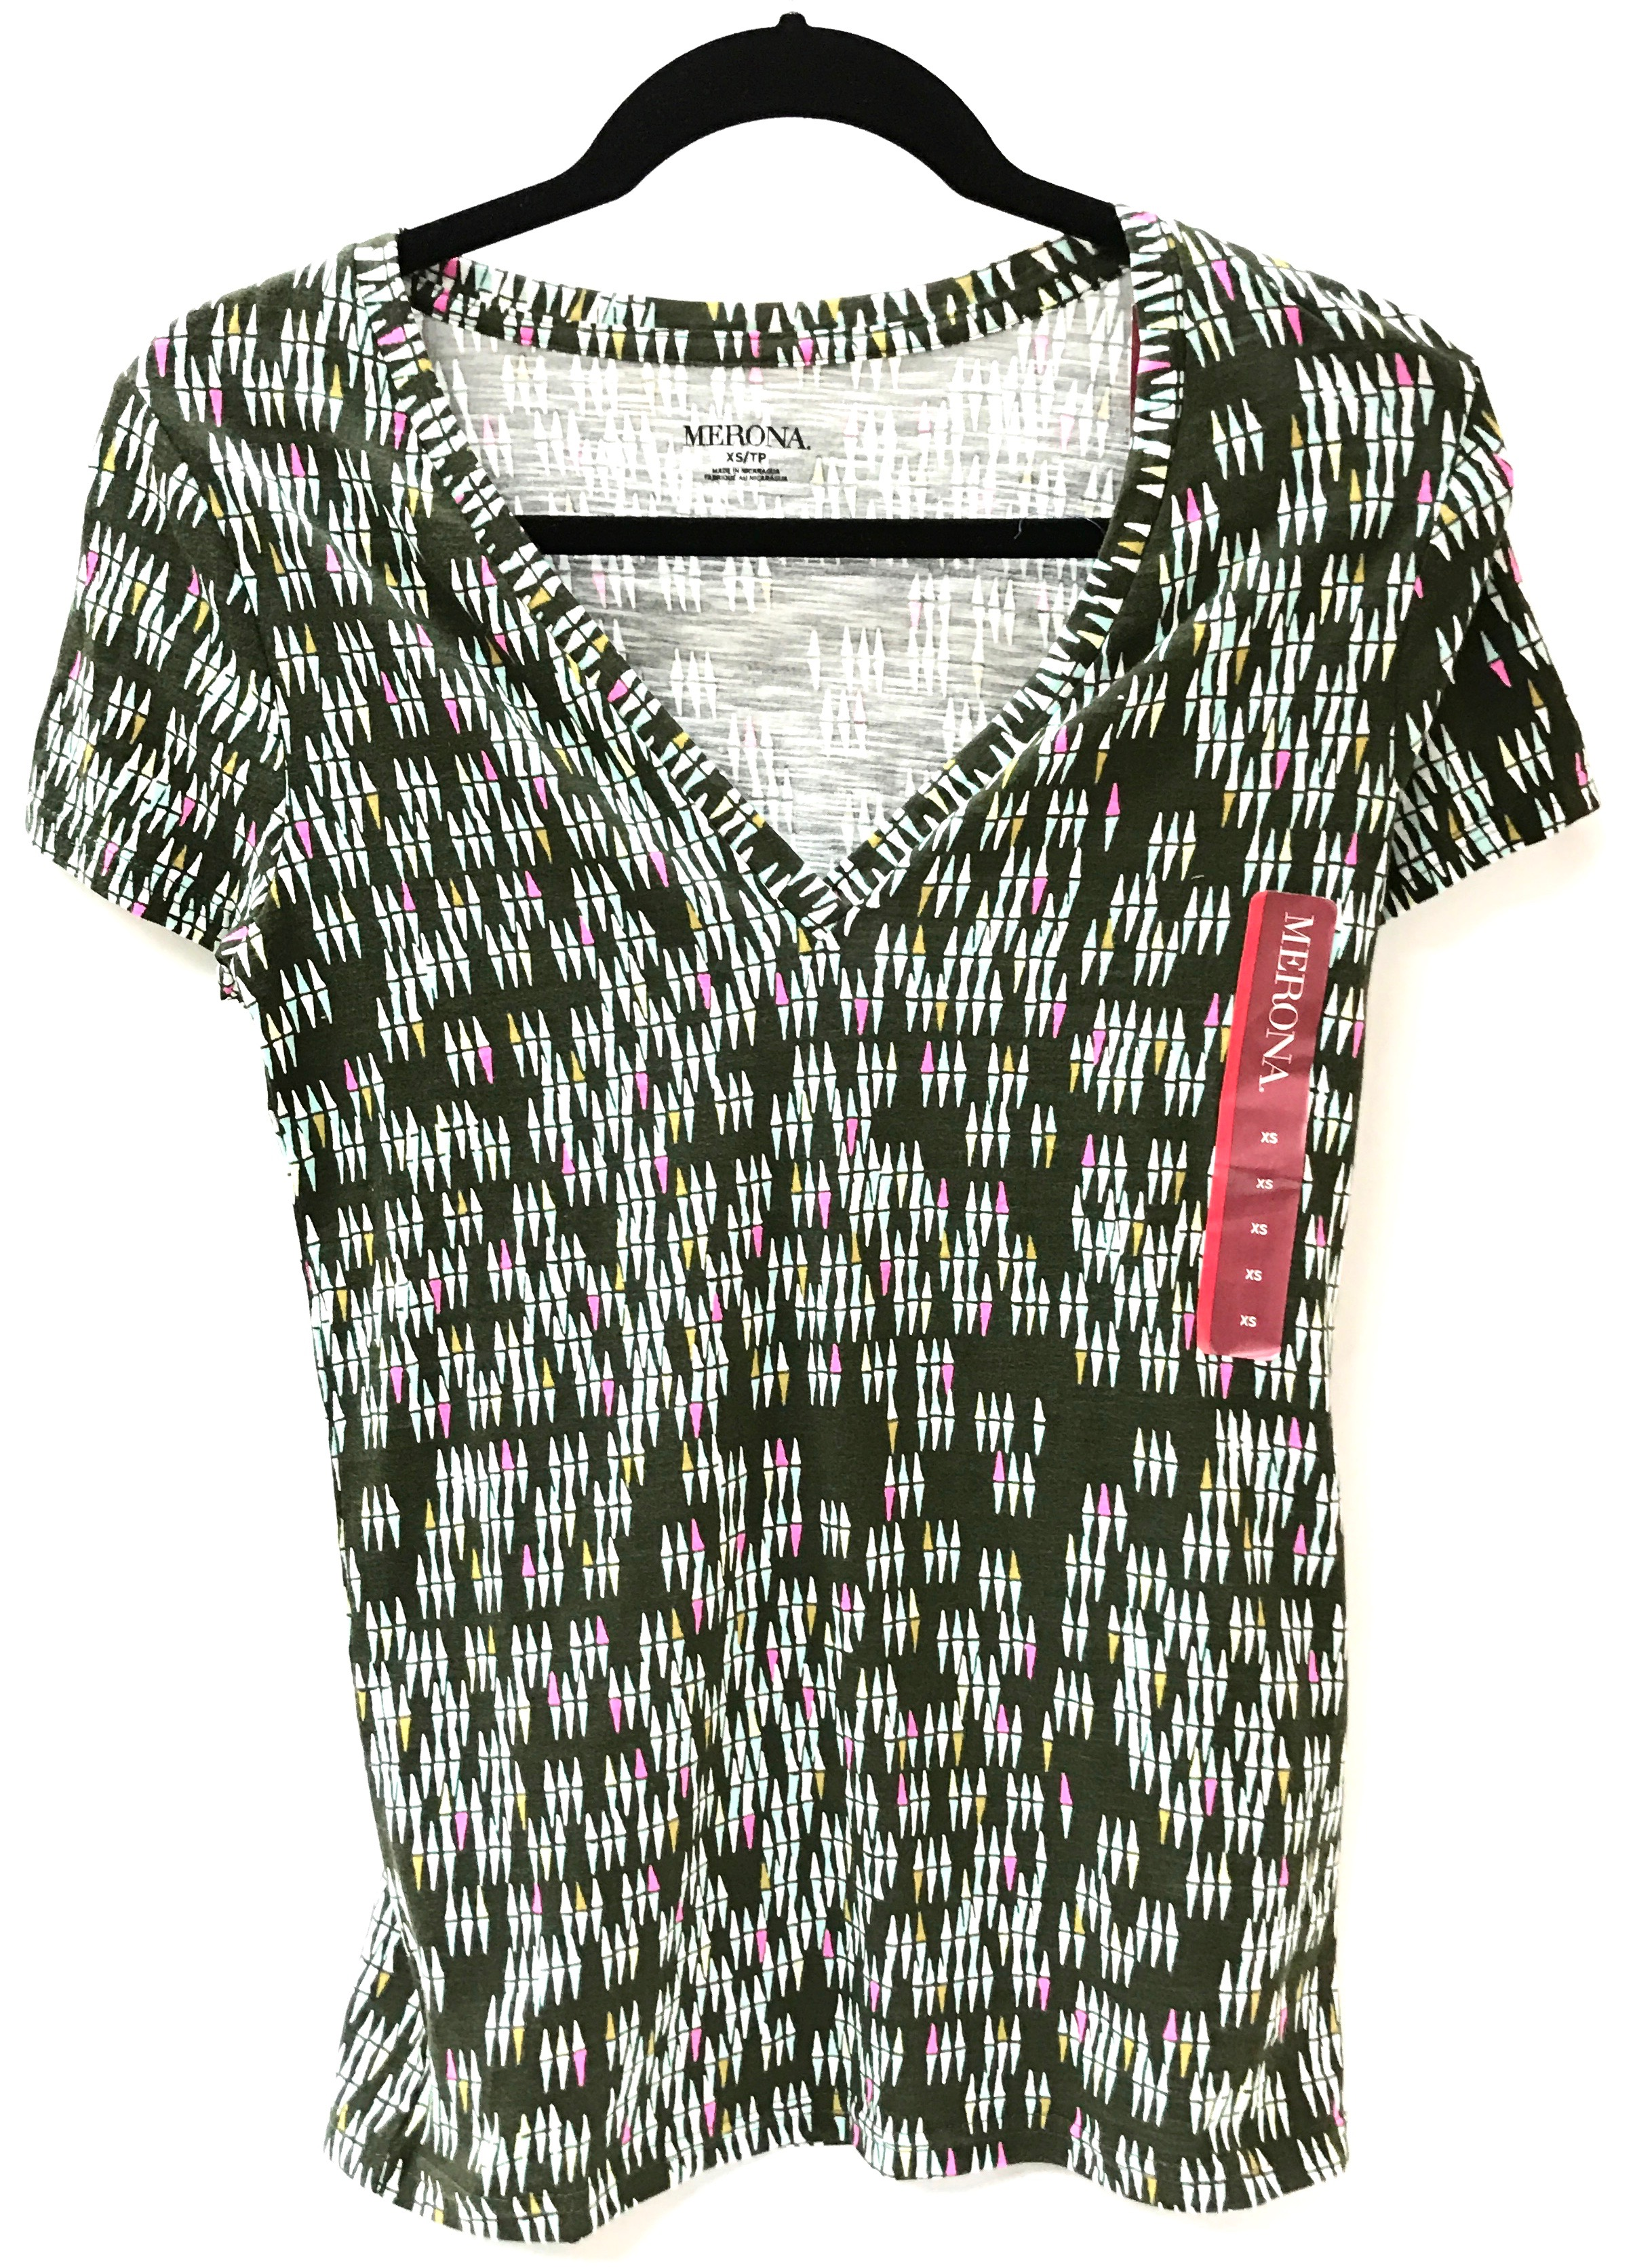 Green Print V-Neck Shirt - MEDIUM